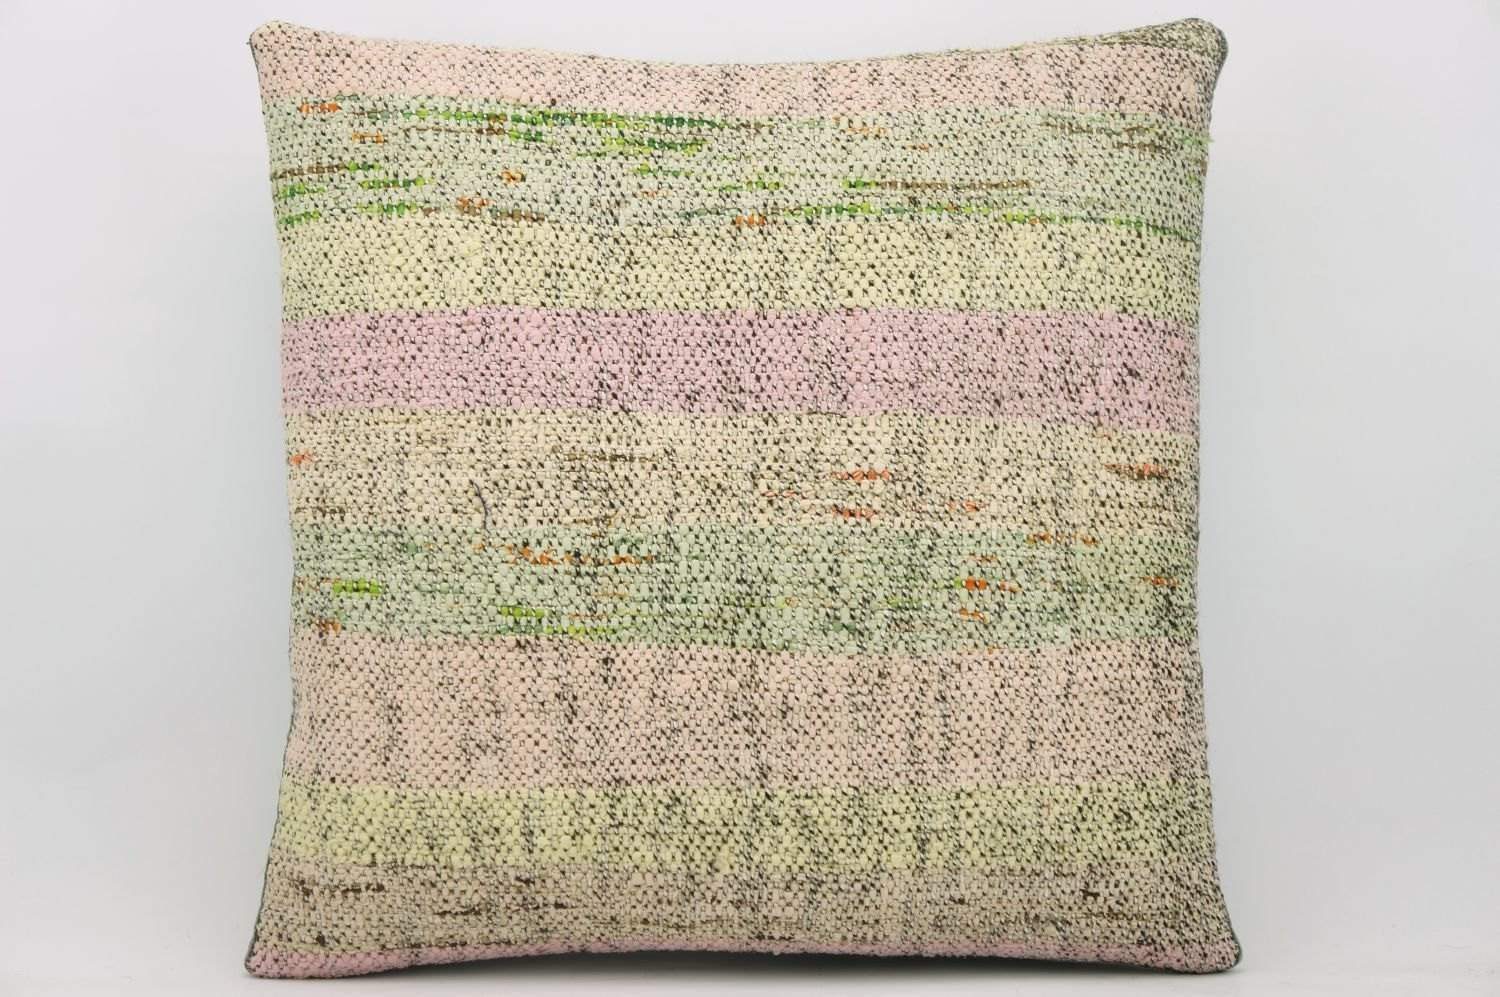 CLEARANCE 16x16  Hand Woven wool light green pinkish striped  Kilim Pillow  cushion 1048_A Wool cushion - kilimpillowstore  - 1